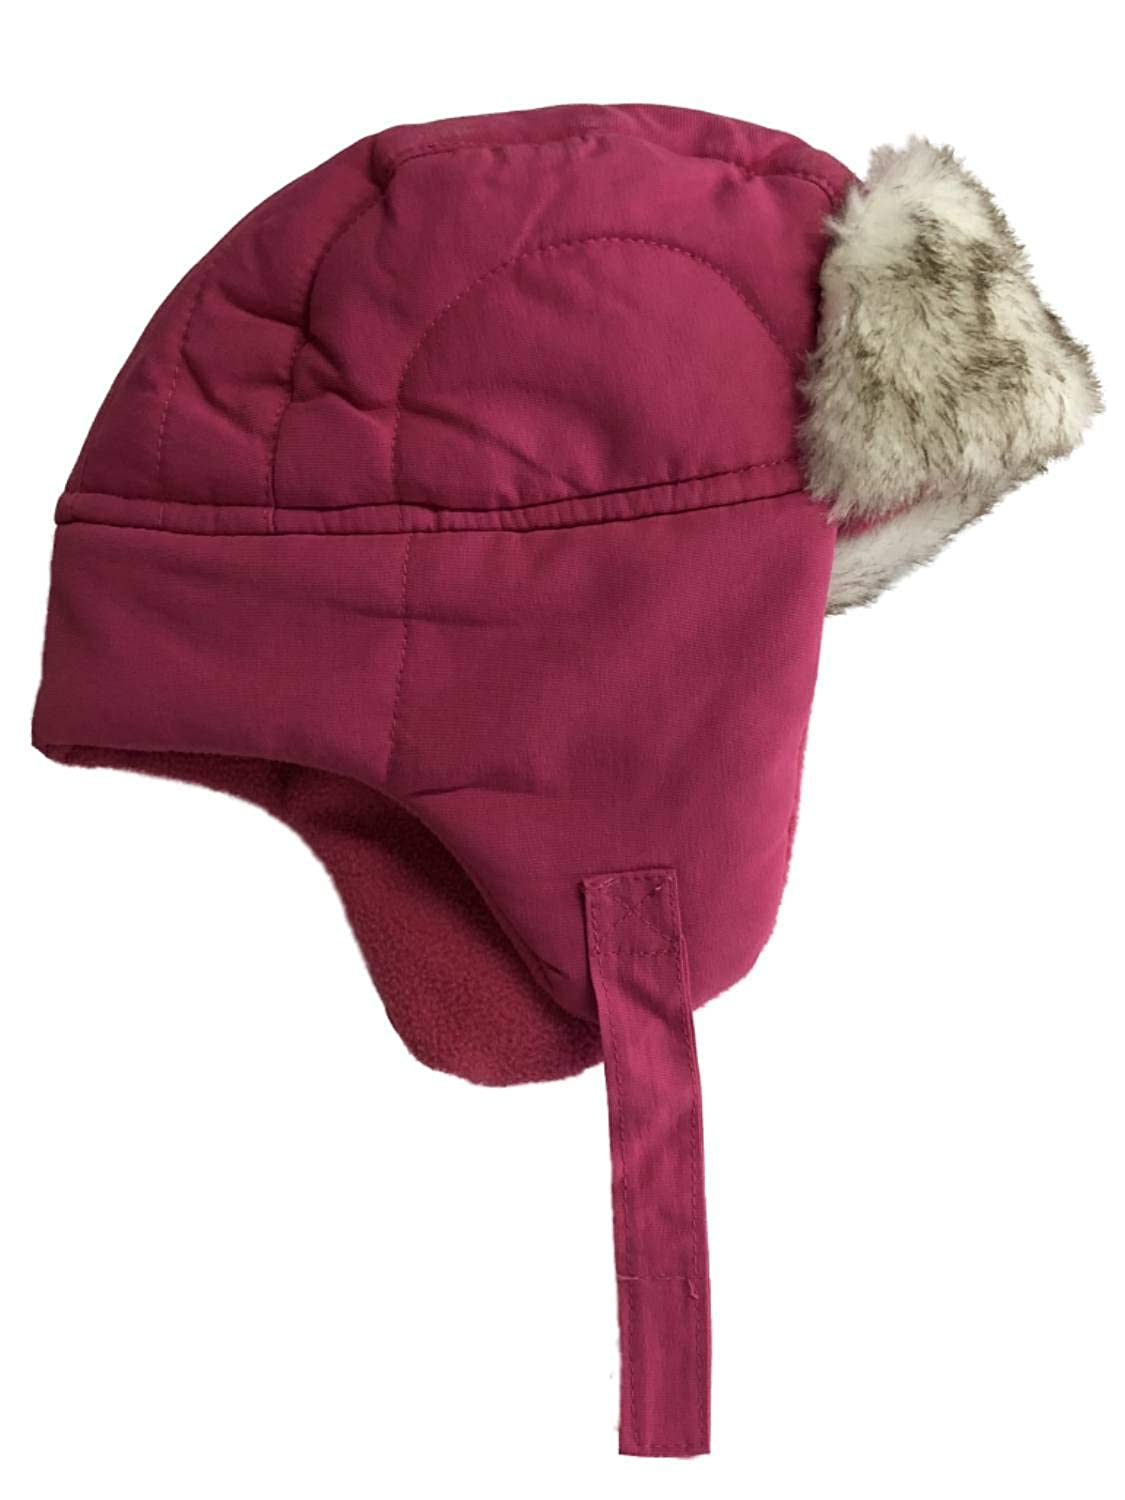 7c0ed676108e2 Amazon.com  ABC Toddler Girls Hot Pink Trapper Hat with Faux Fur Trim  Aviator Cap  Clothing